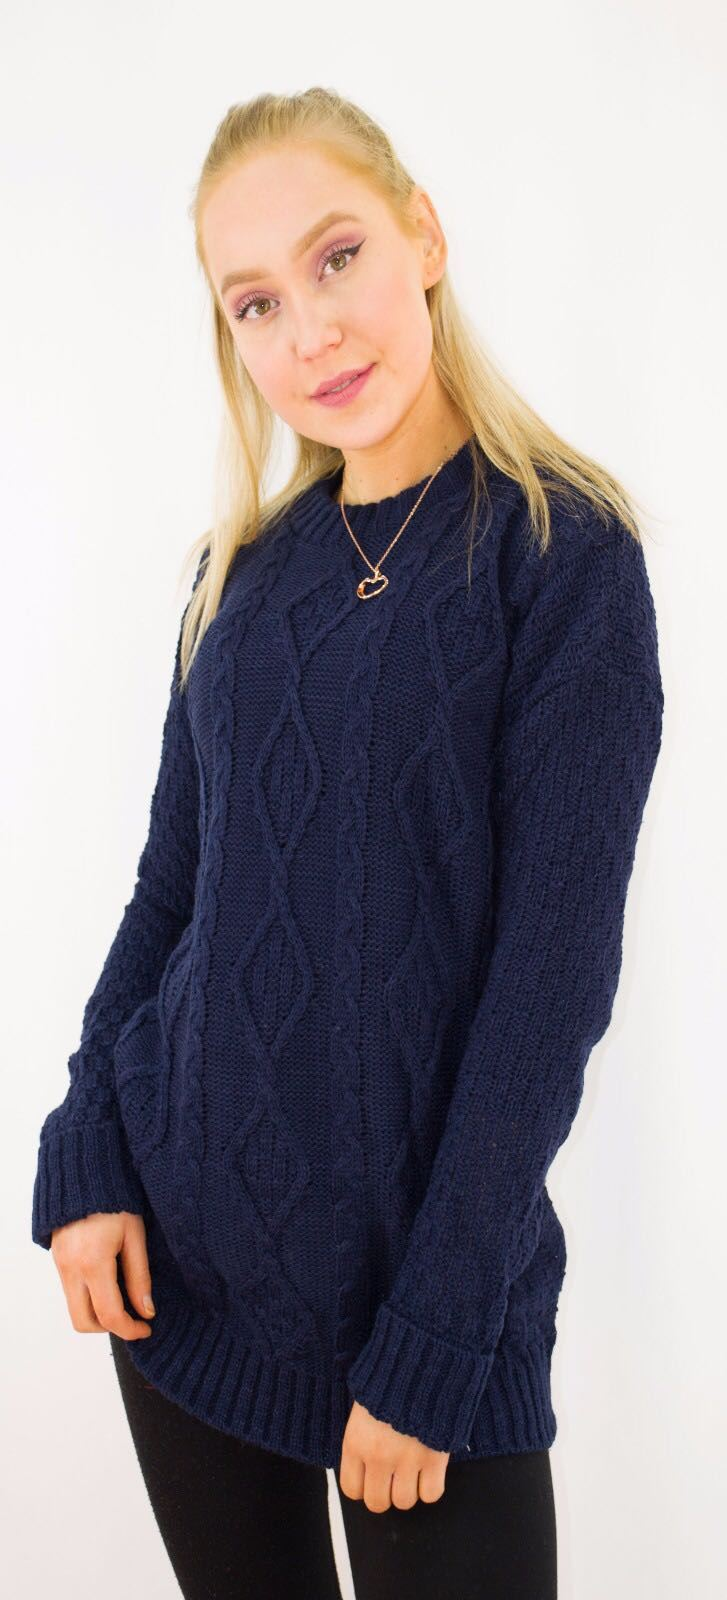 New-Ladies-Long-Manche-Chunky-Cable-Knitted-Jumper-crew-neck-hiver-Sweater-Top miniature 27